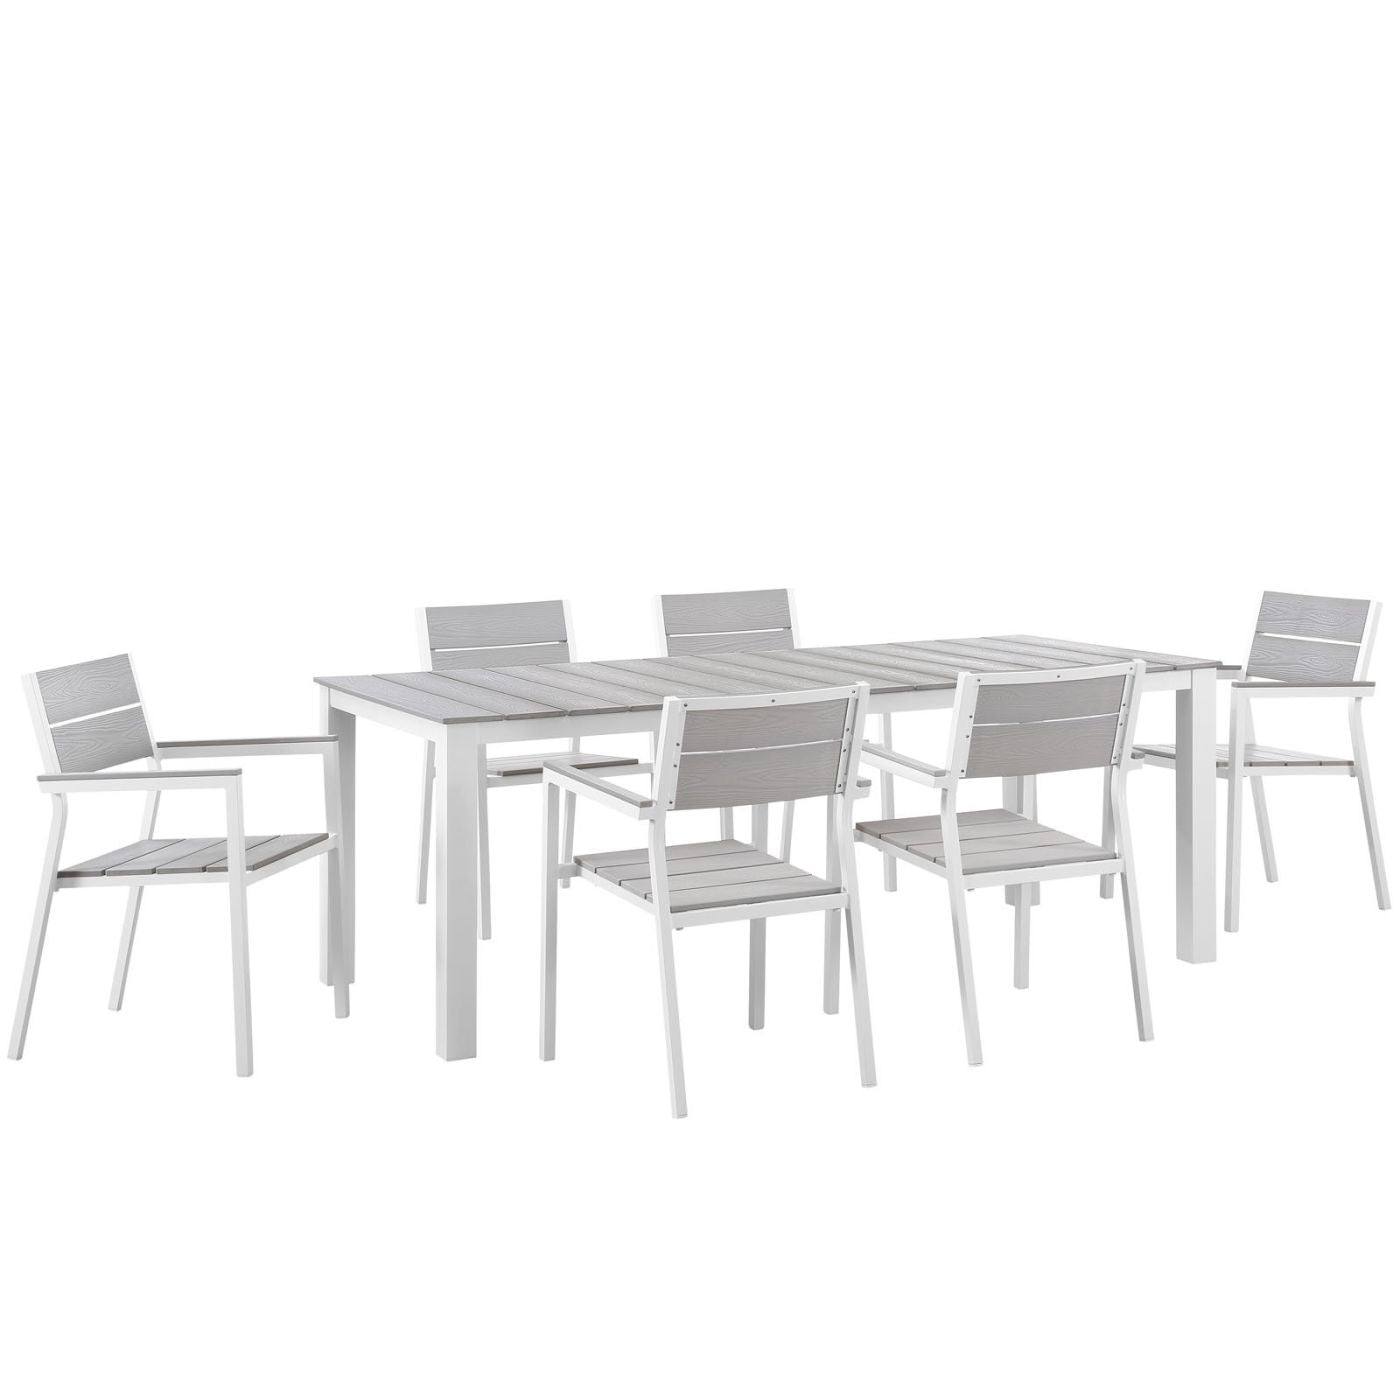 Modway Outdoor Dining Sets On Sale Eei 1751 Whi Lgr Set Maine